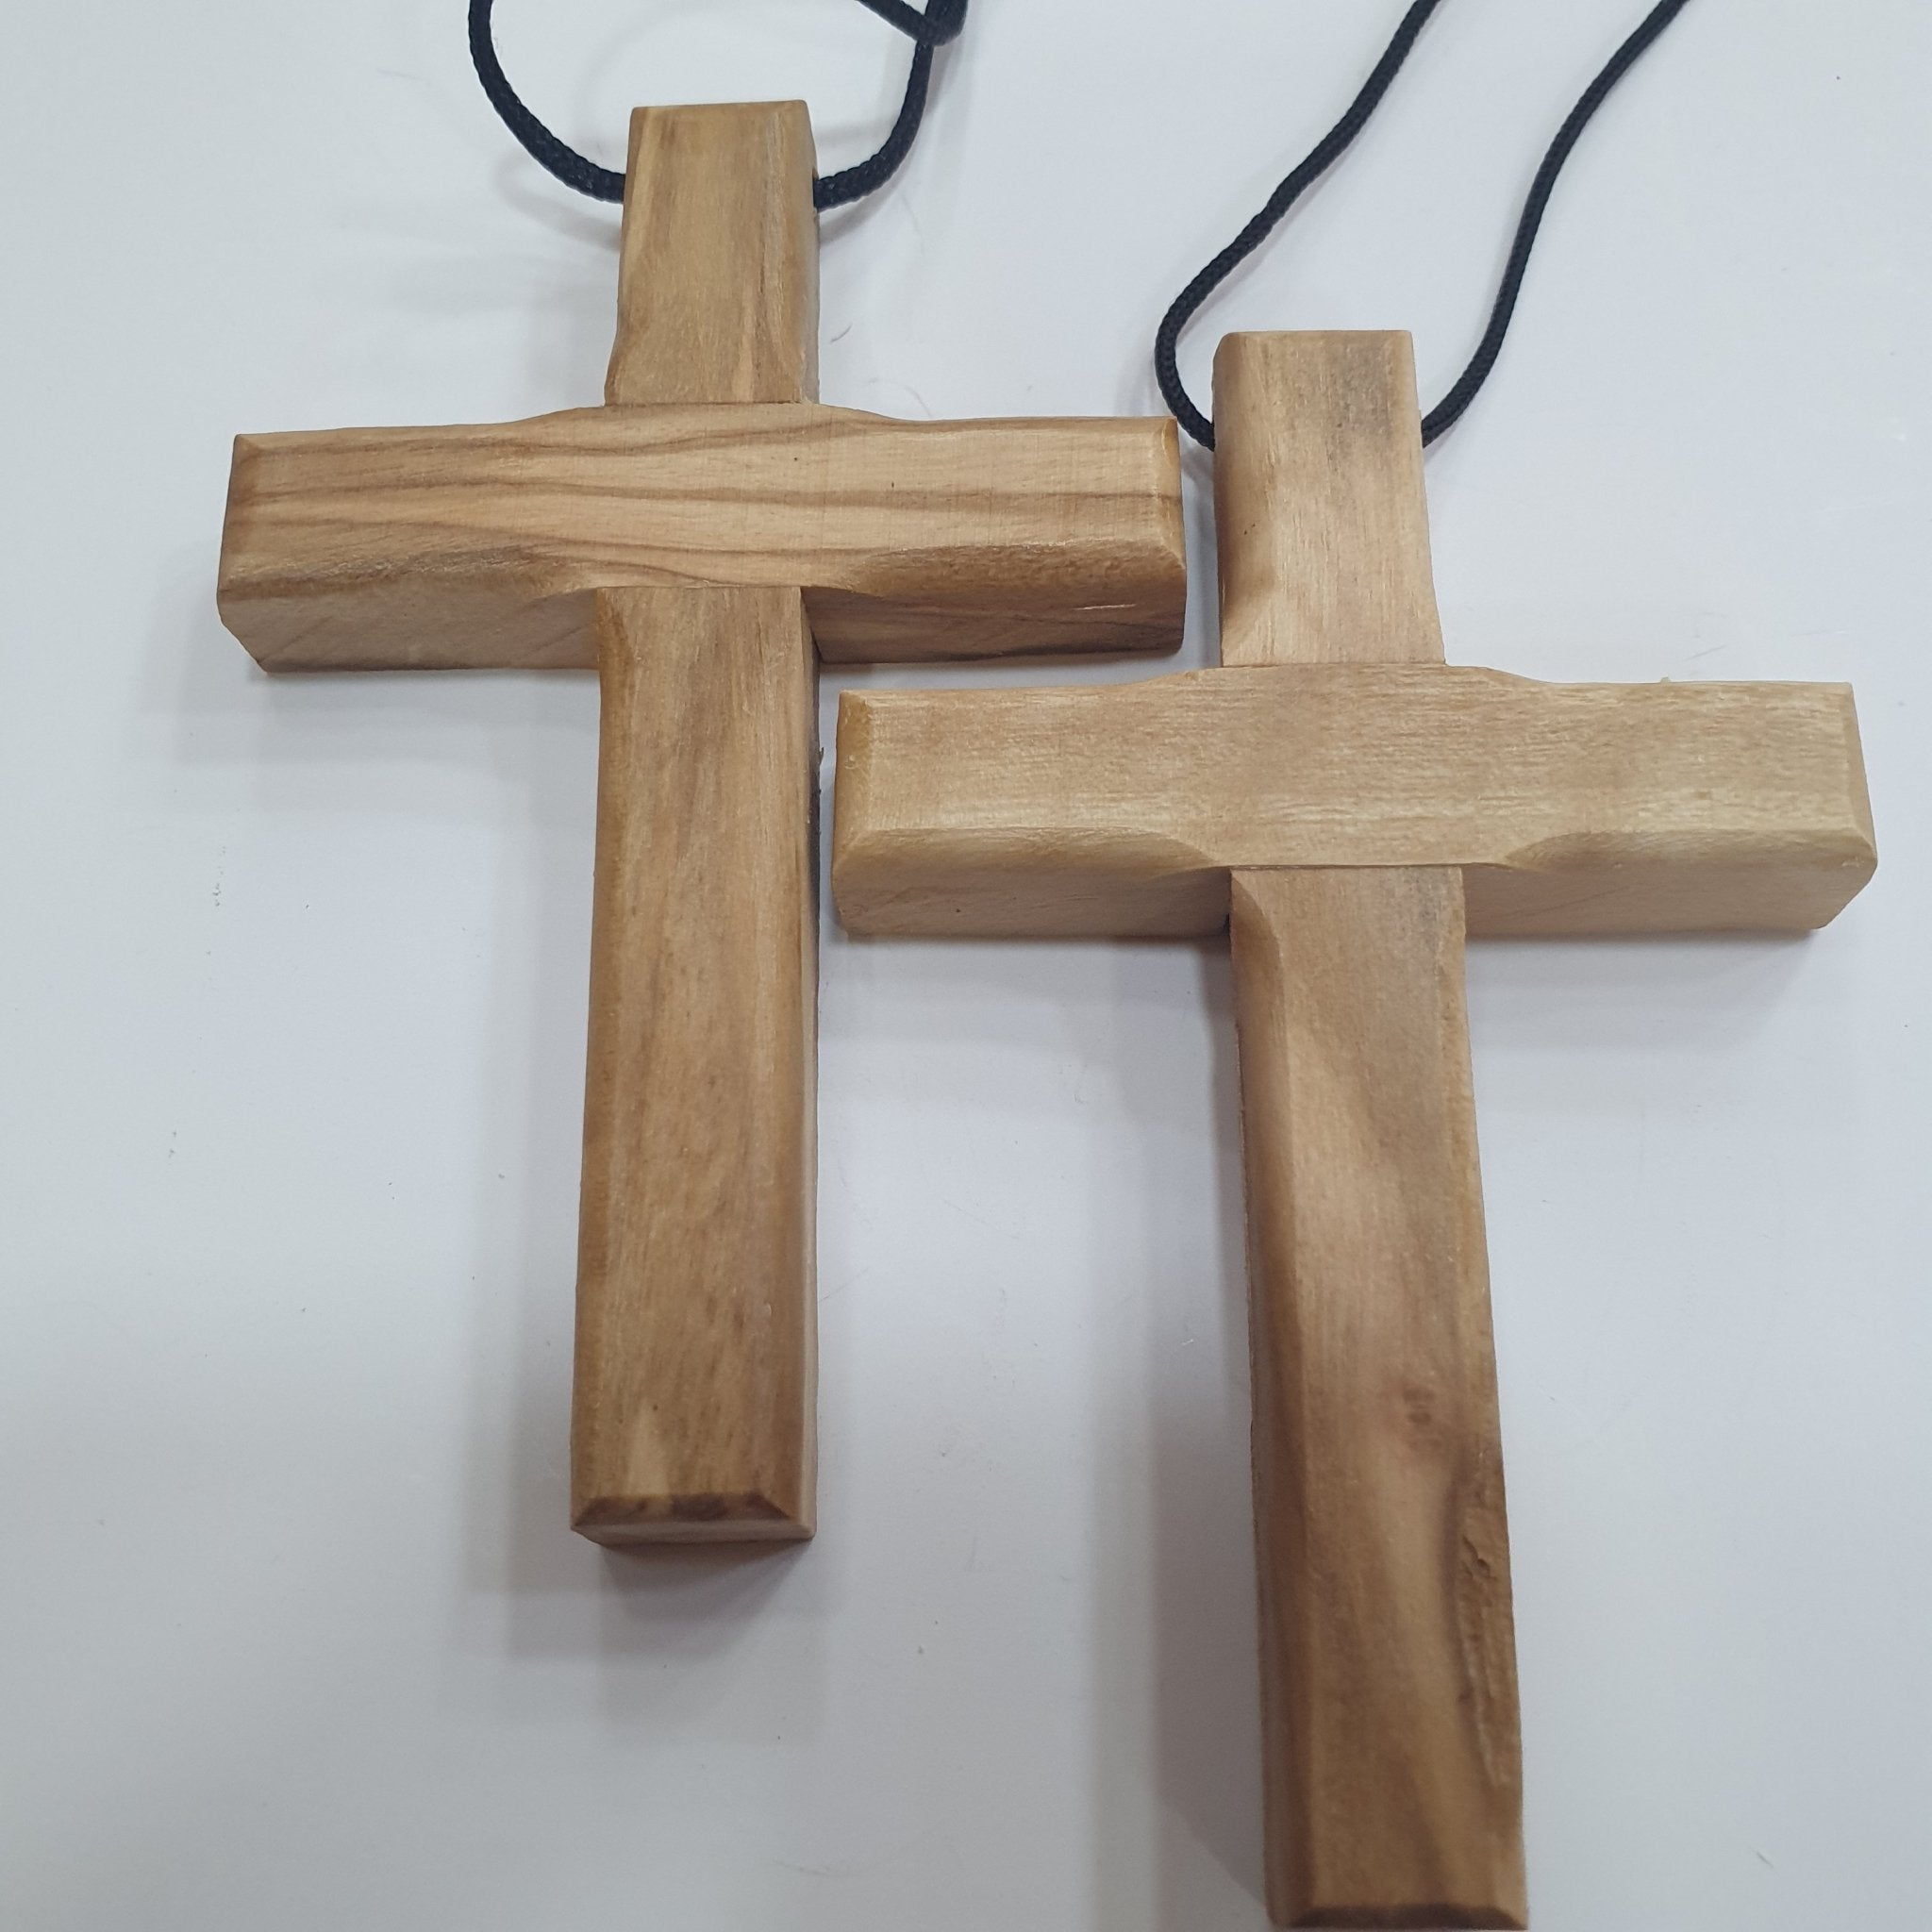 2 Hand Made Olive Wood Crosses by Zuluf PEN206 - Zuluf